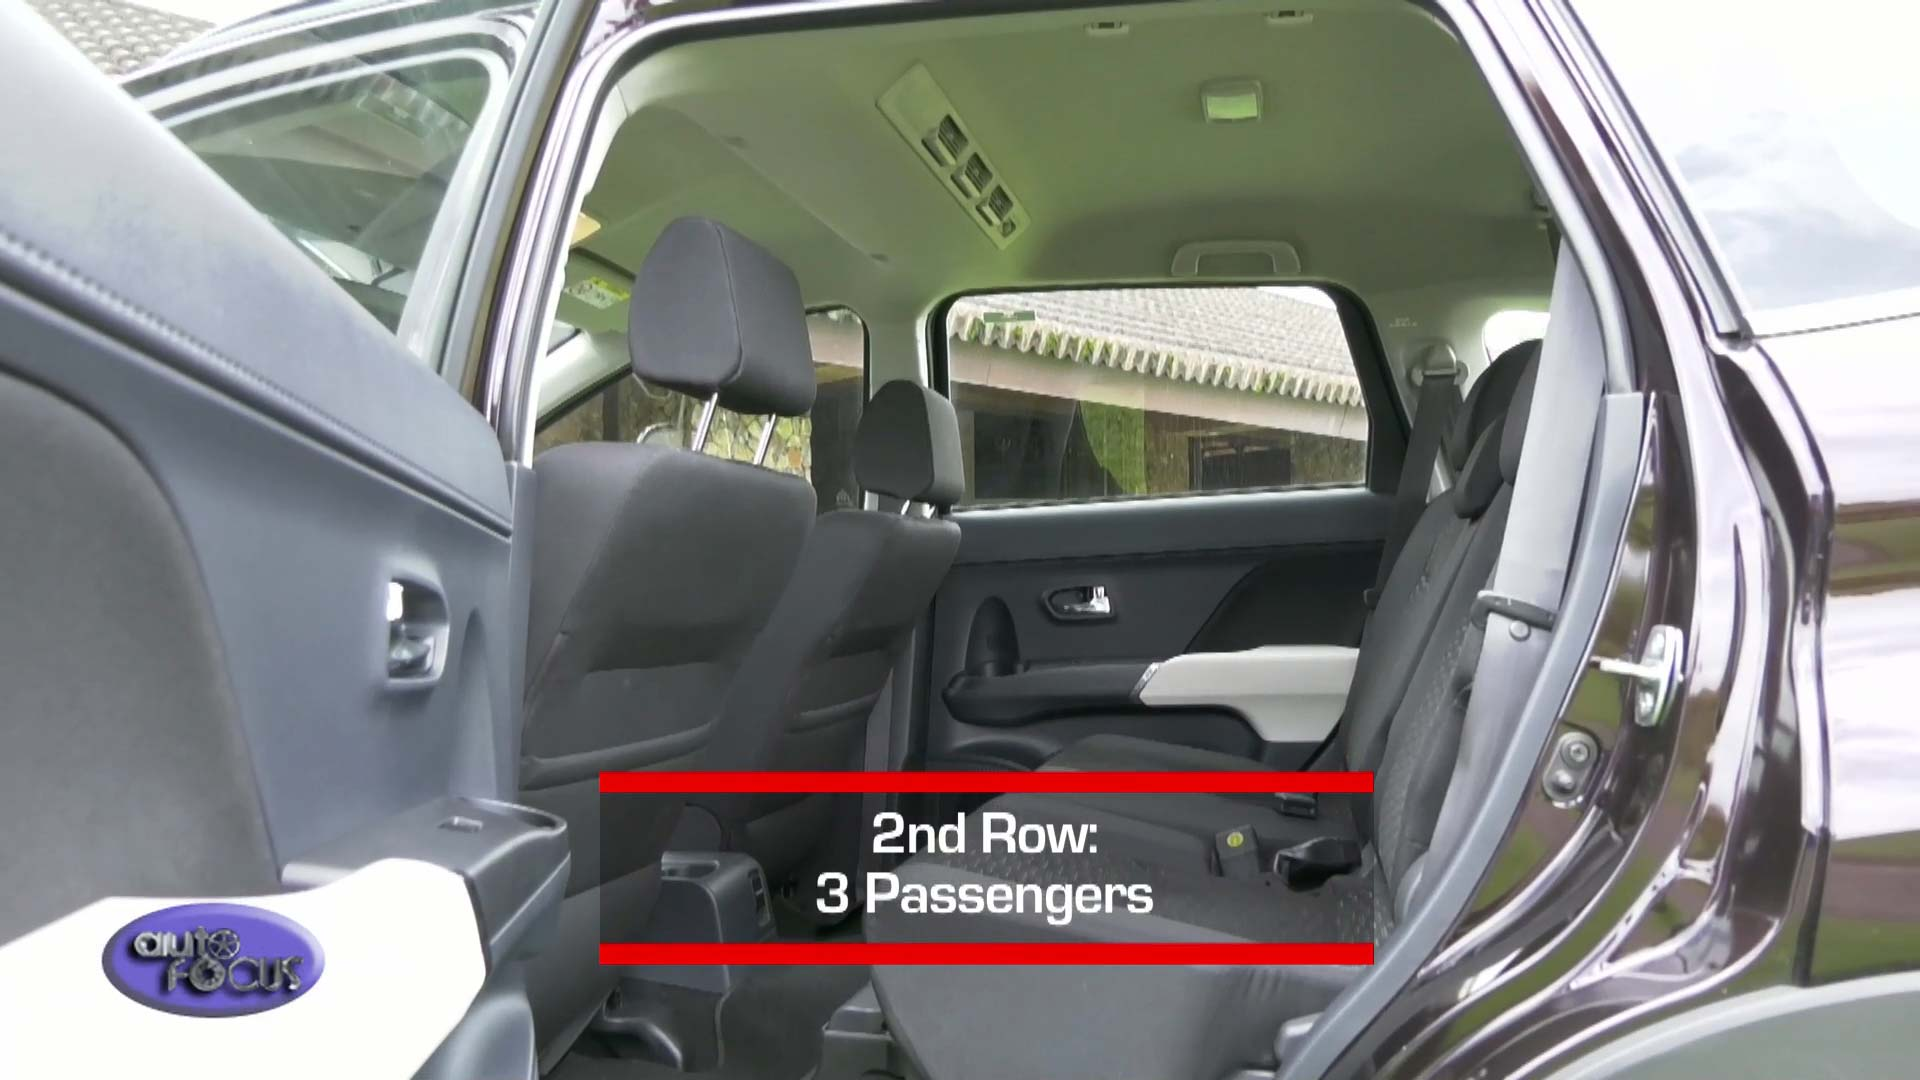 Production Models: Toyota Rush 1 5G Review - Auto Focus